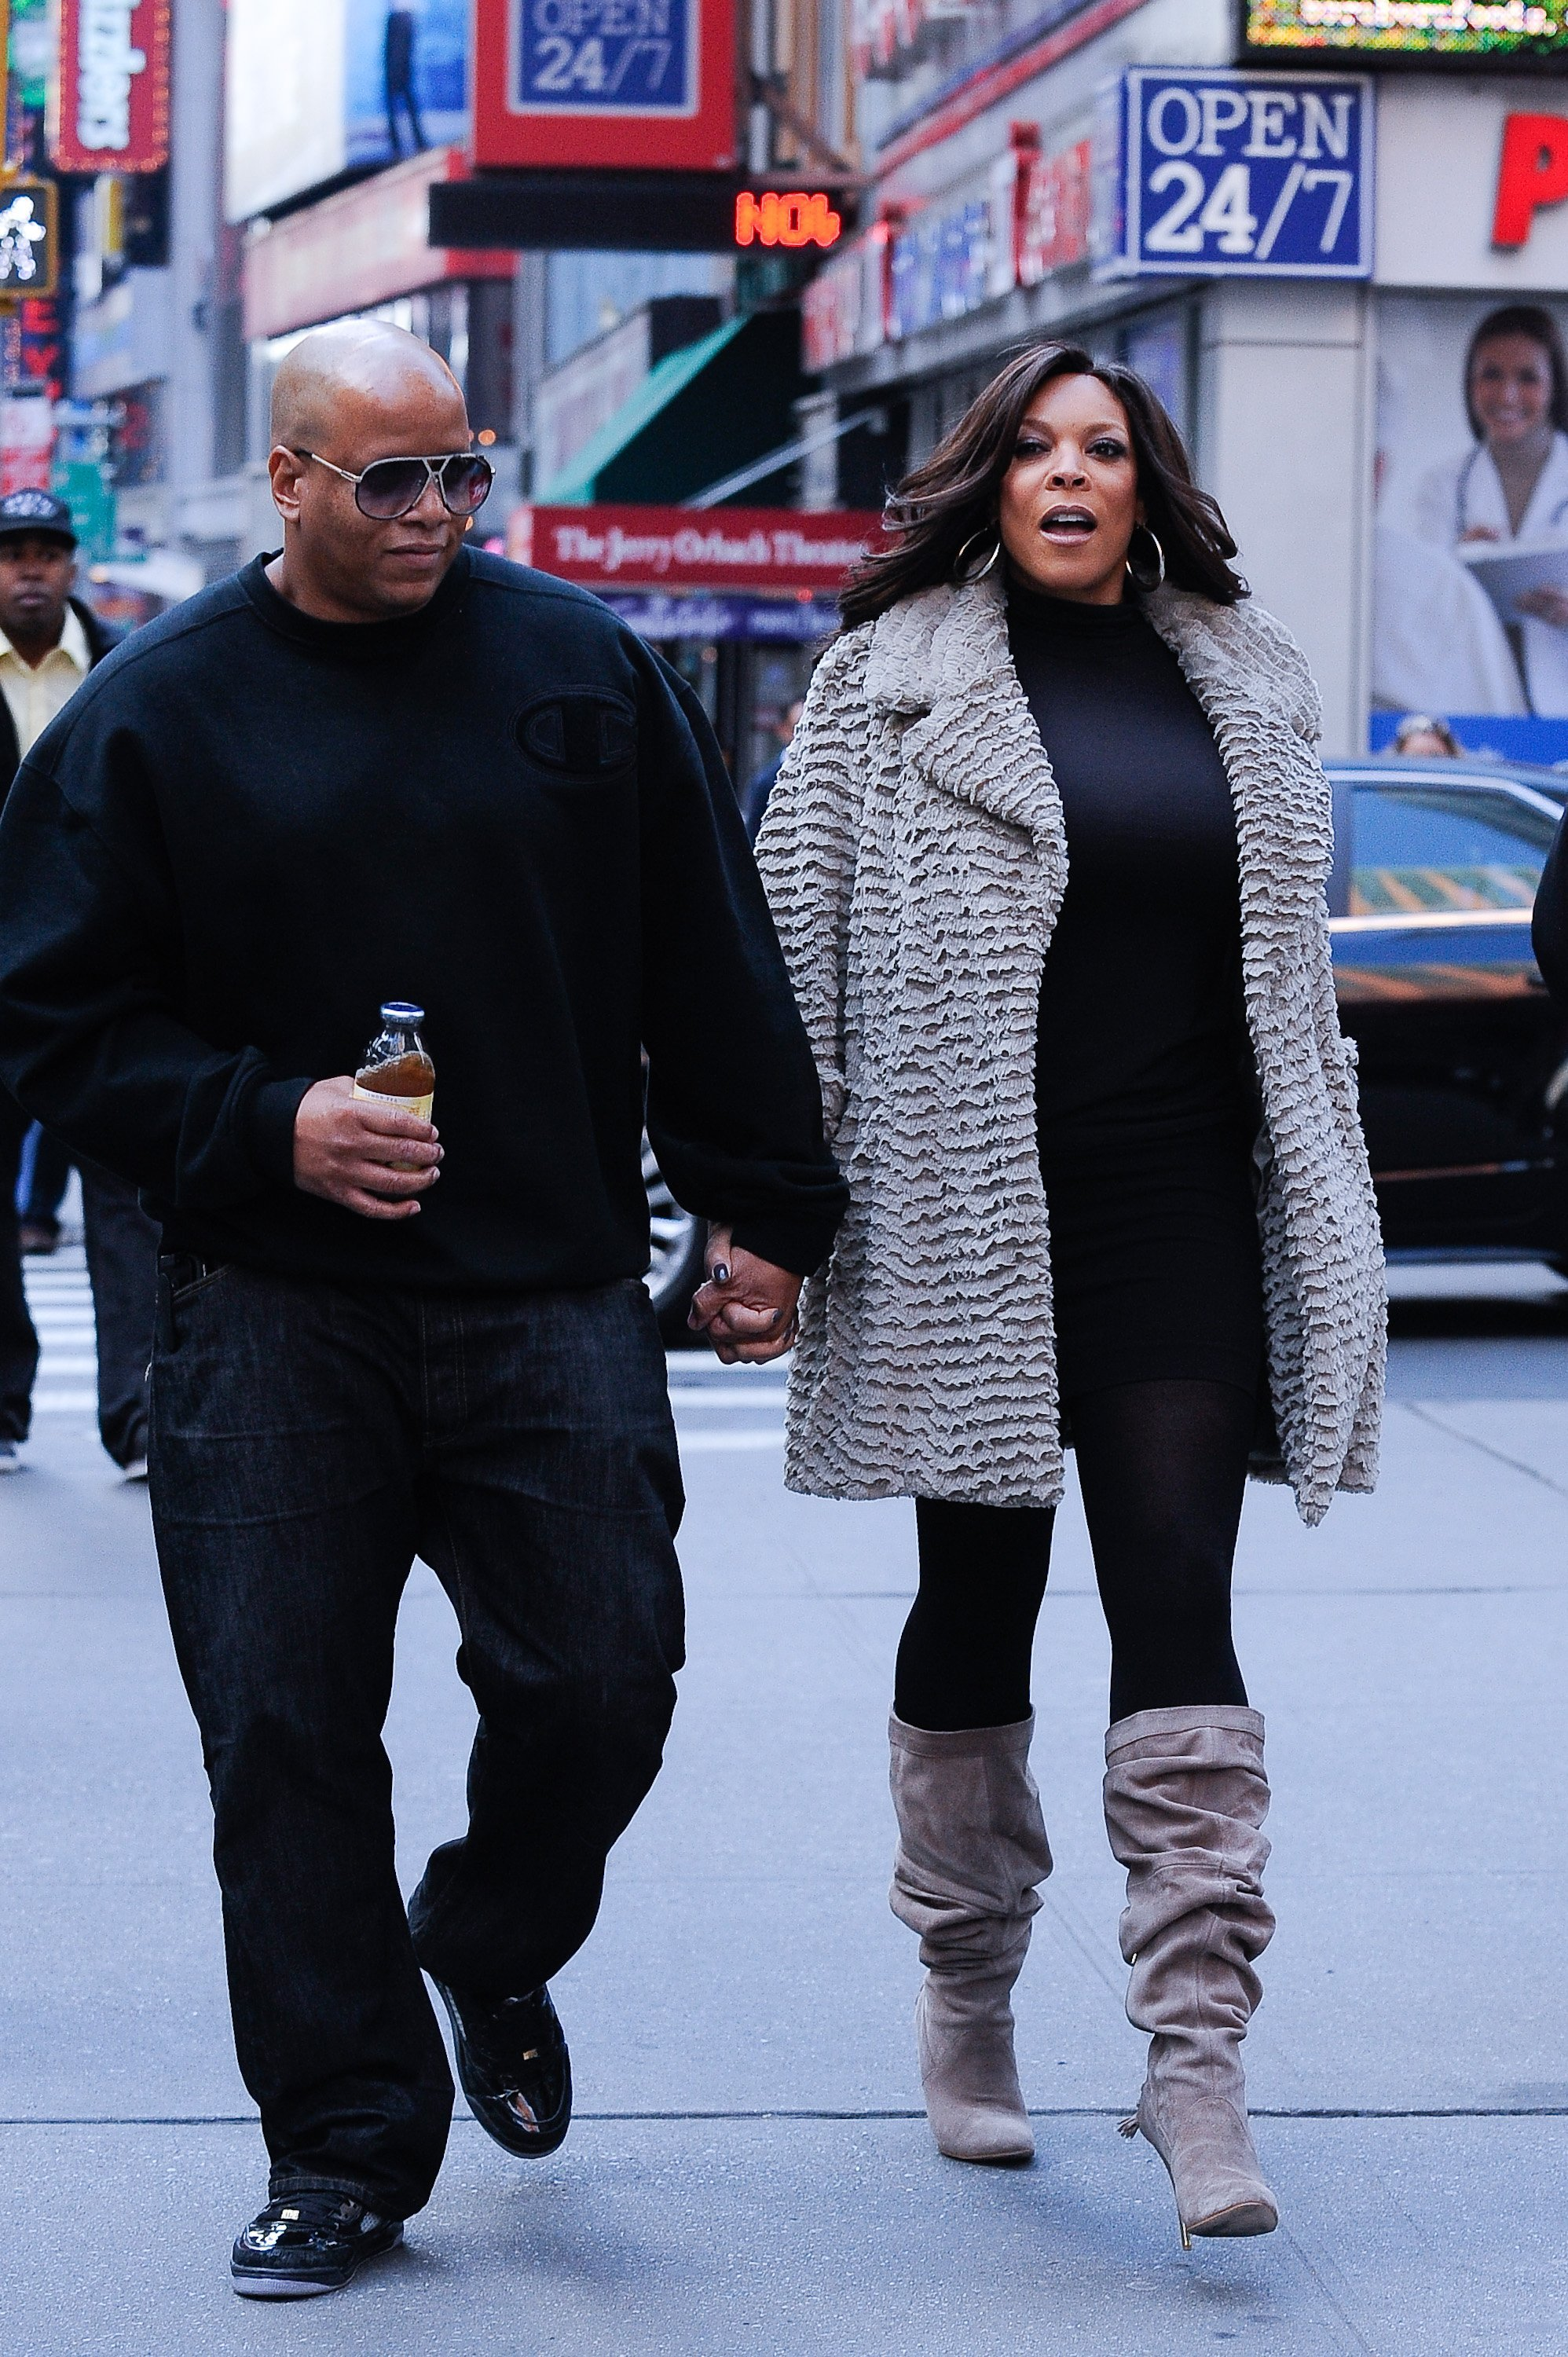 Wendy Williams and her husband Kevin Hunter leaving the 'Celebrity Apprentice' film set at Famiglia Restaurant on October 19, 2010 in New York City. | Source: Getty